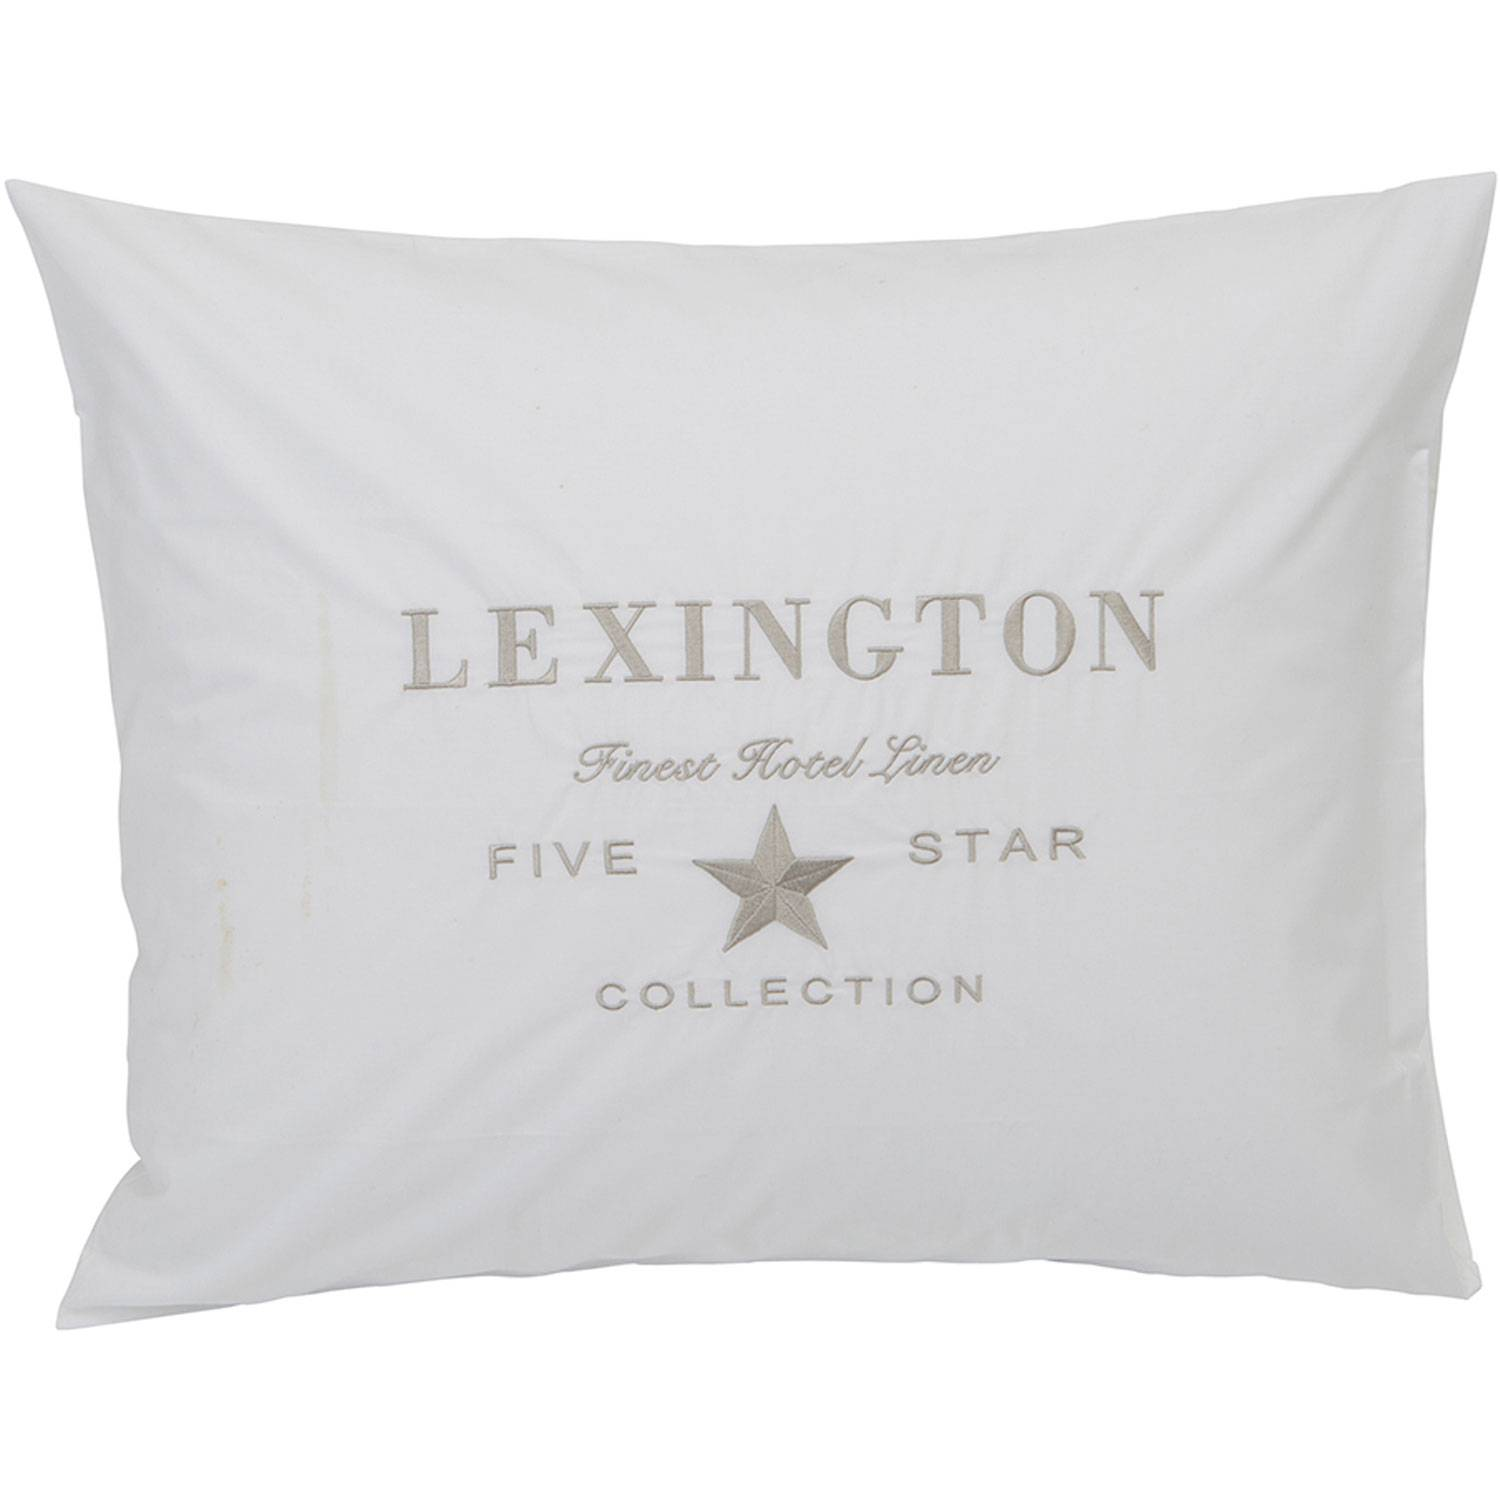 Lexington Hotel Embroidery Pillowcase 50x60 cm, White/Beige